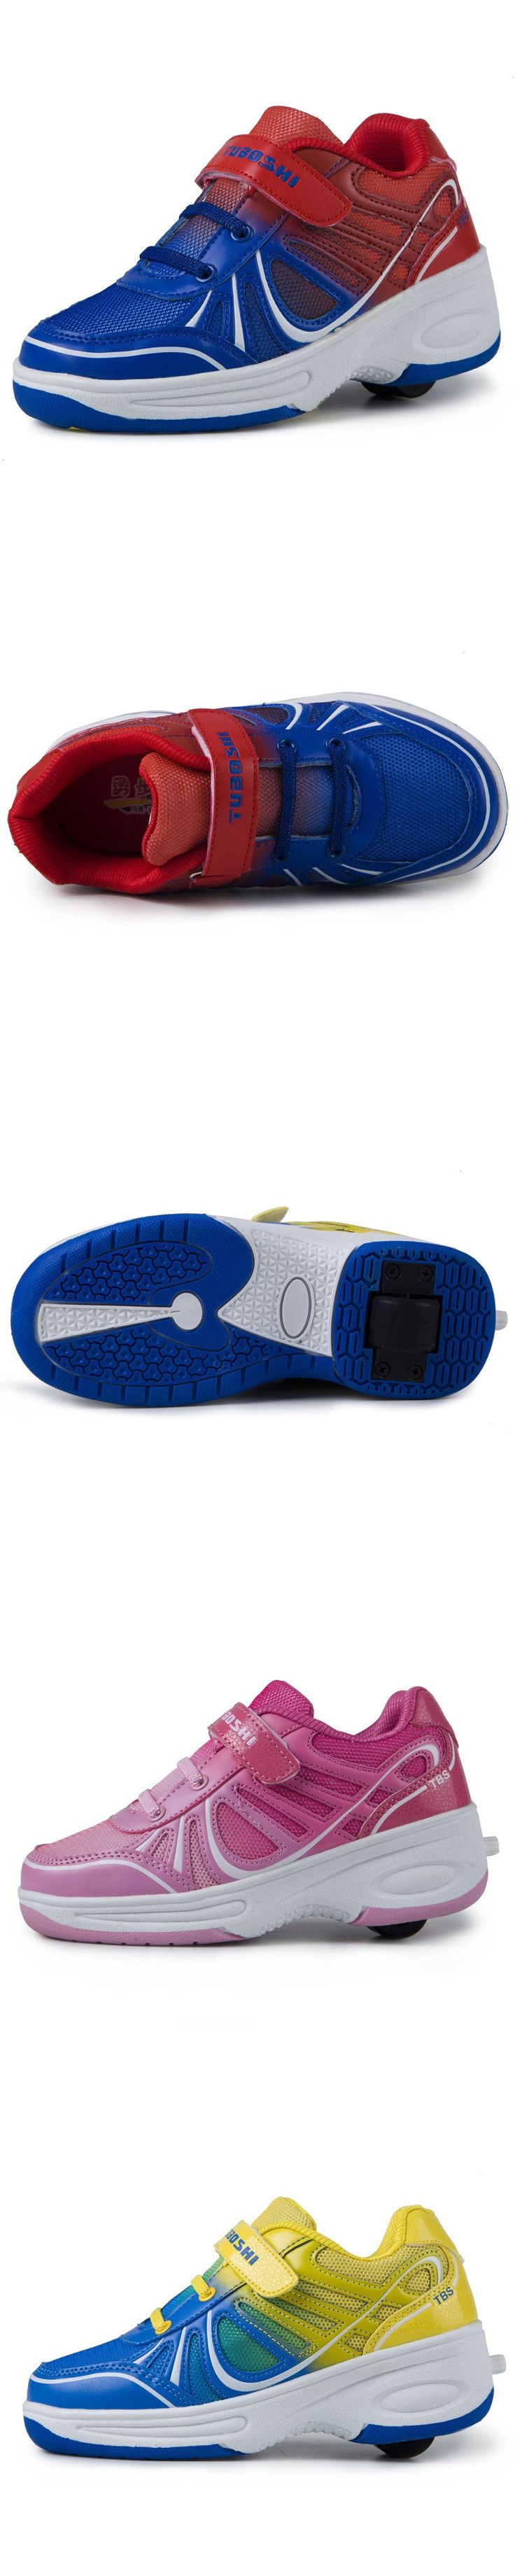 Zumiez roller skates - 2016 Heelies For Kids Shoes With Wheels Roller Skate Shoes For Kids Heelys Children Kids Sneakers With Wheels Chaussure Enfant